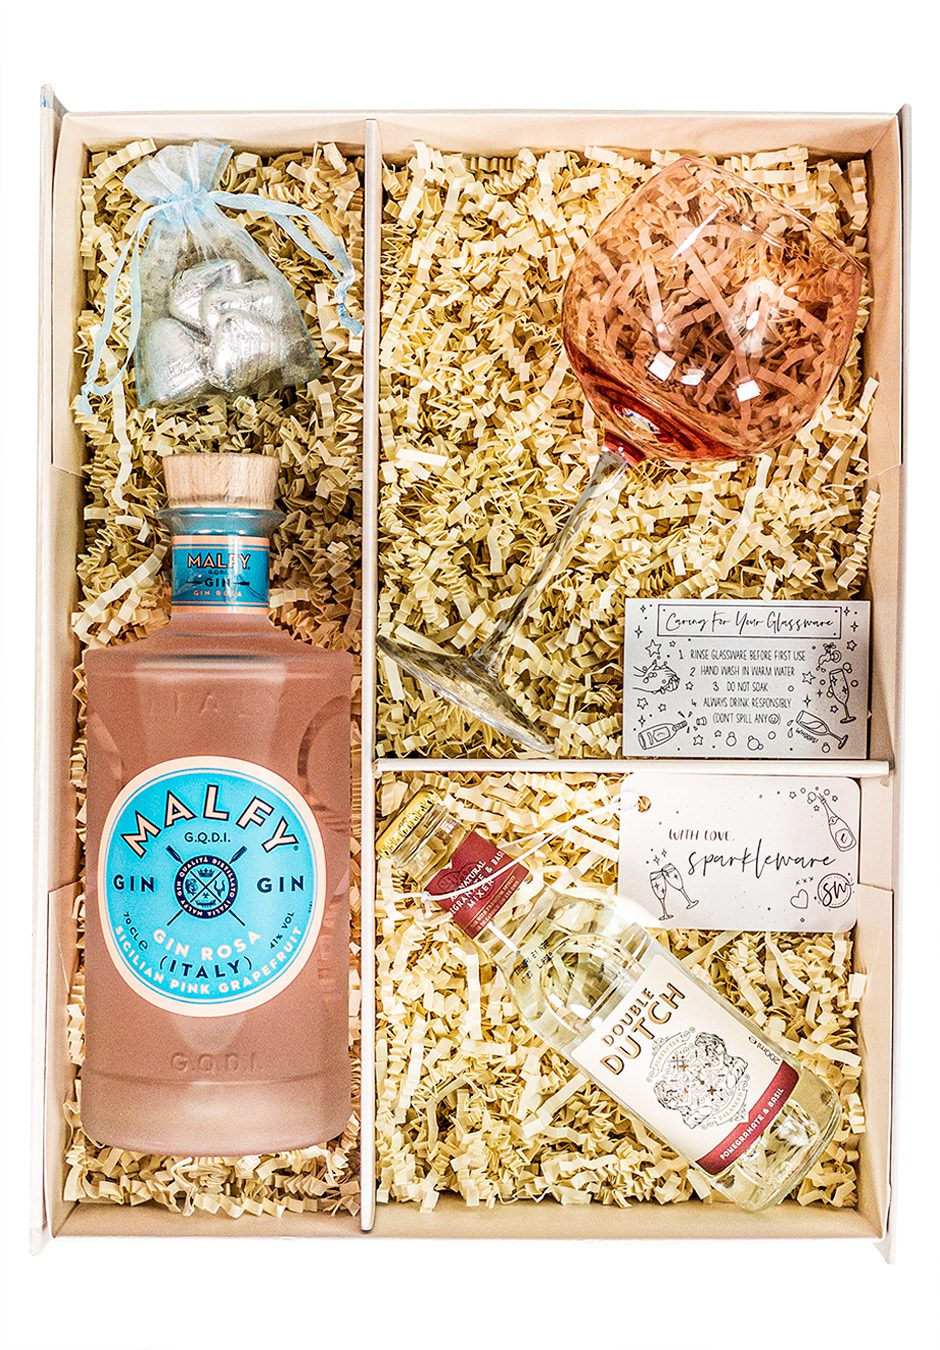 Malfy Gin   Gin Rosa   Sicilian pink grapefruit   70cl   Sparkleware Gift Set   Keico Drinks